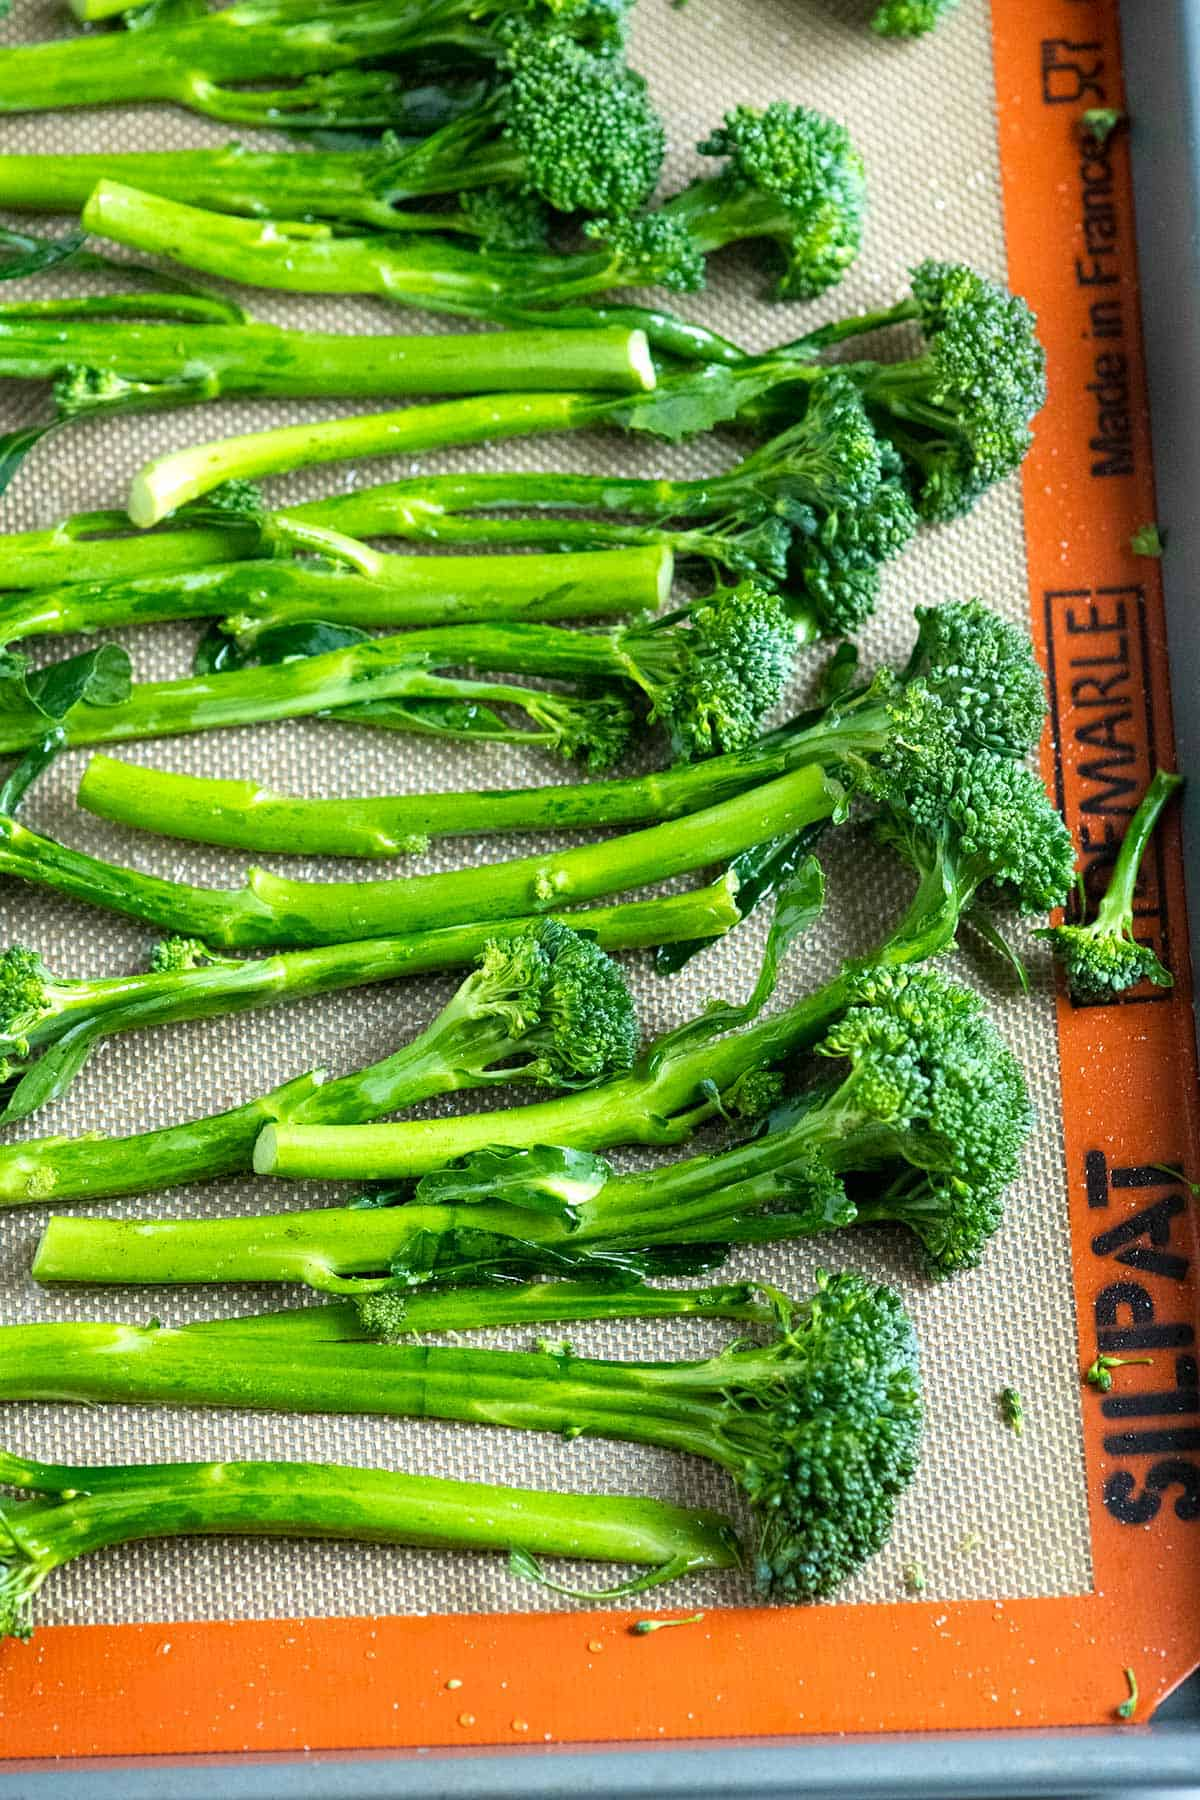 Broccolini ready to be roasted